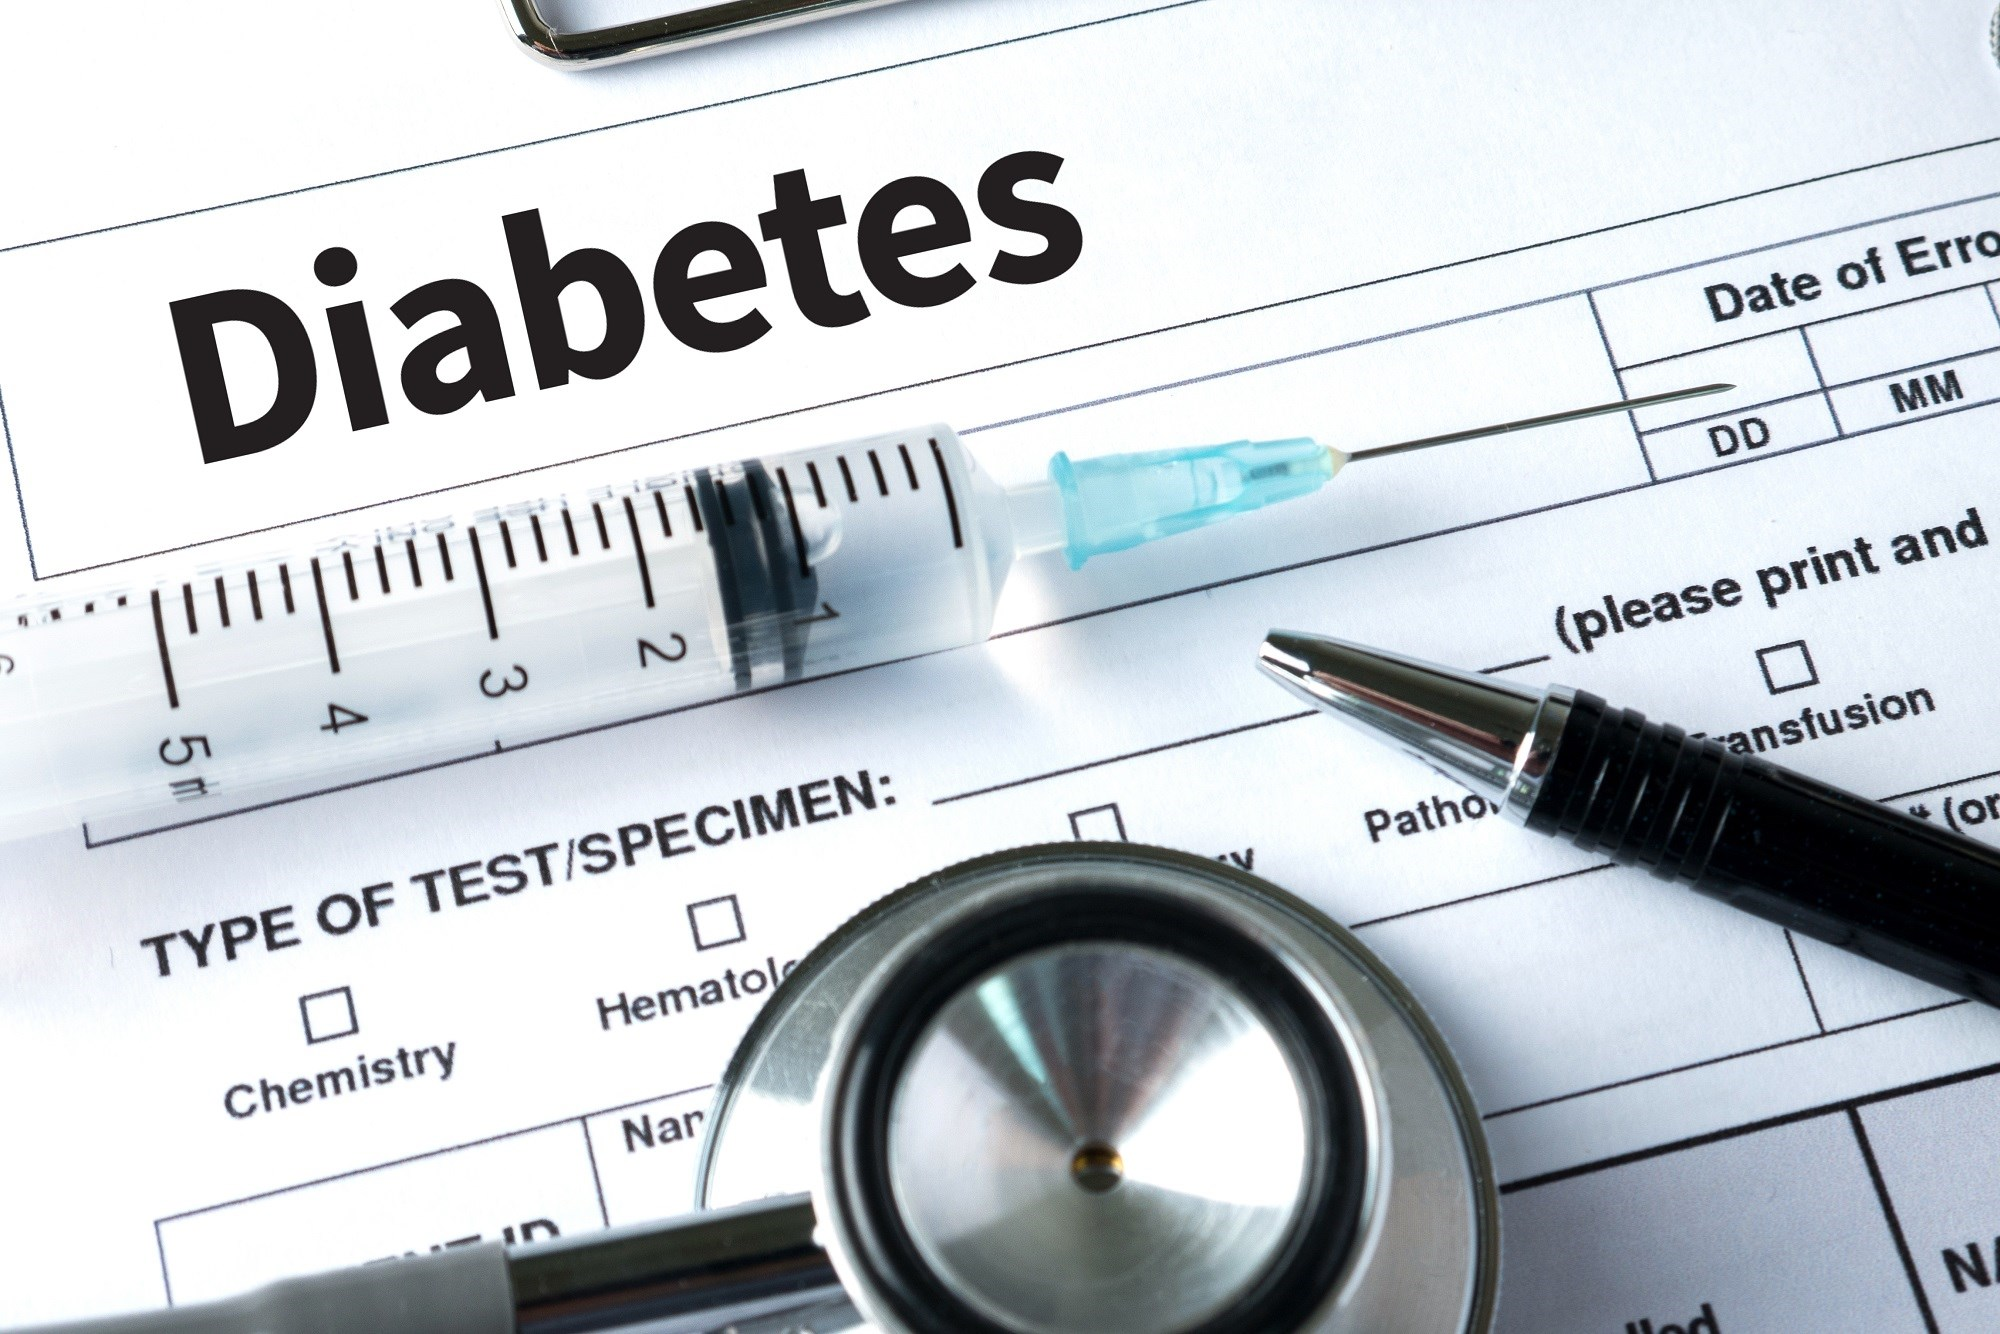 A multidisciplinary committee of 15 leading experts in diabetes care reviewed evidence from studies published in MEDLINE since October 15, 2017, to update prior ADA recommendations.